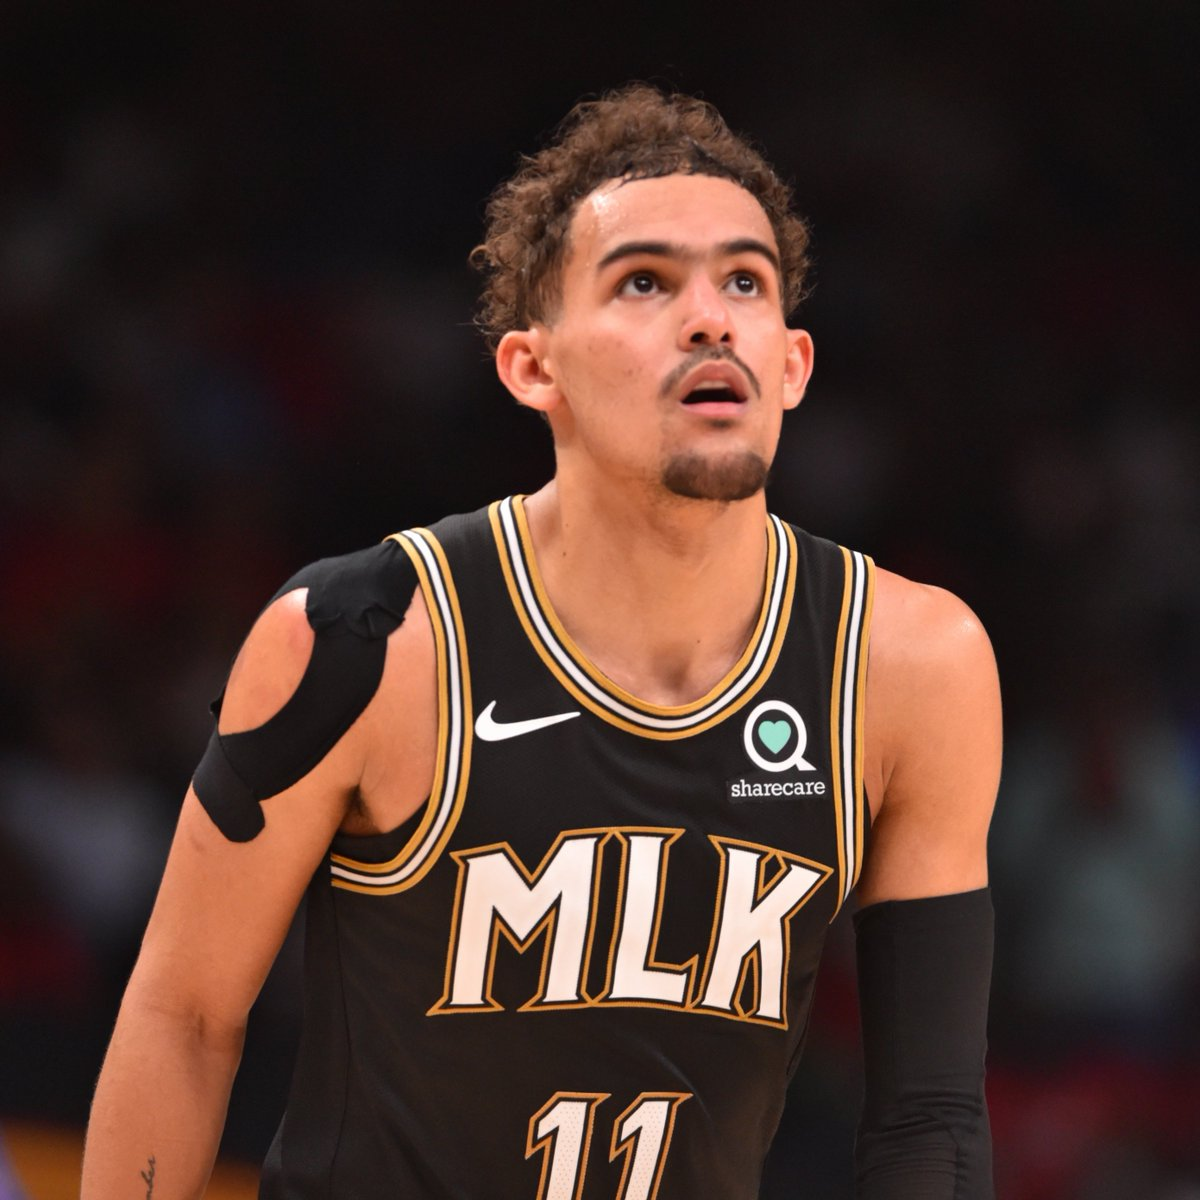 Trae Young is the first player to record at least 25 PTS and 18 AST in a playoff game since Tim Hardaway in May of 1991. https://t.co/fl9NLs9s1G